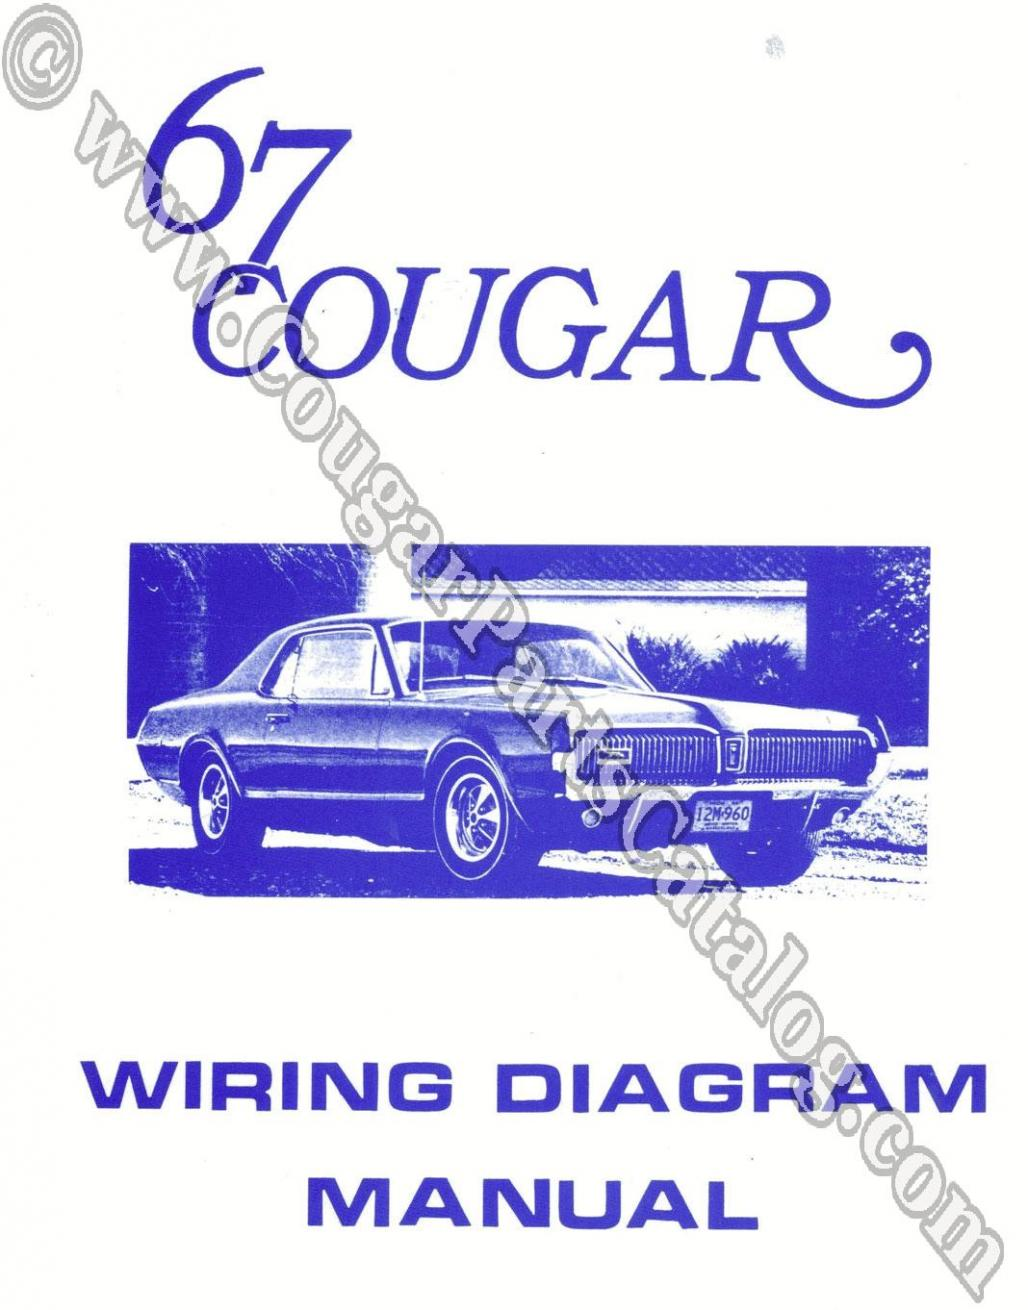 hight resolution of manual wiring diagram repro 1967 mercury cougar 25959